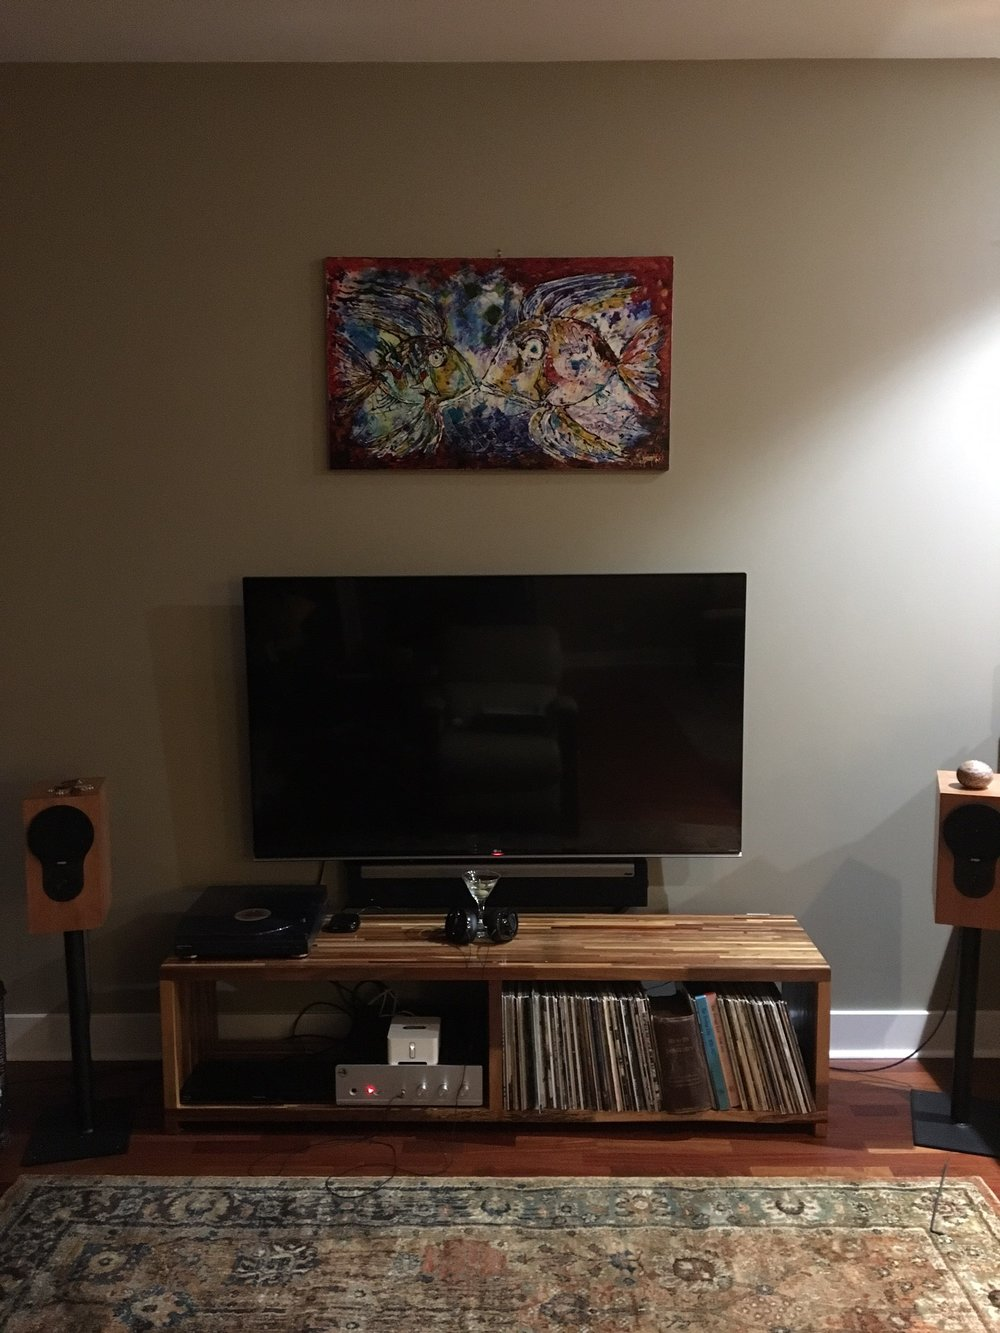 Chris C System: Rogue Audio Sphinx hybrid integrated, turntable, Sonos connect, Rega RX1 speakers on GHA stands, custom GHA mahogany table, AudioQuest Nighthawk headphones.  Radical.